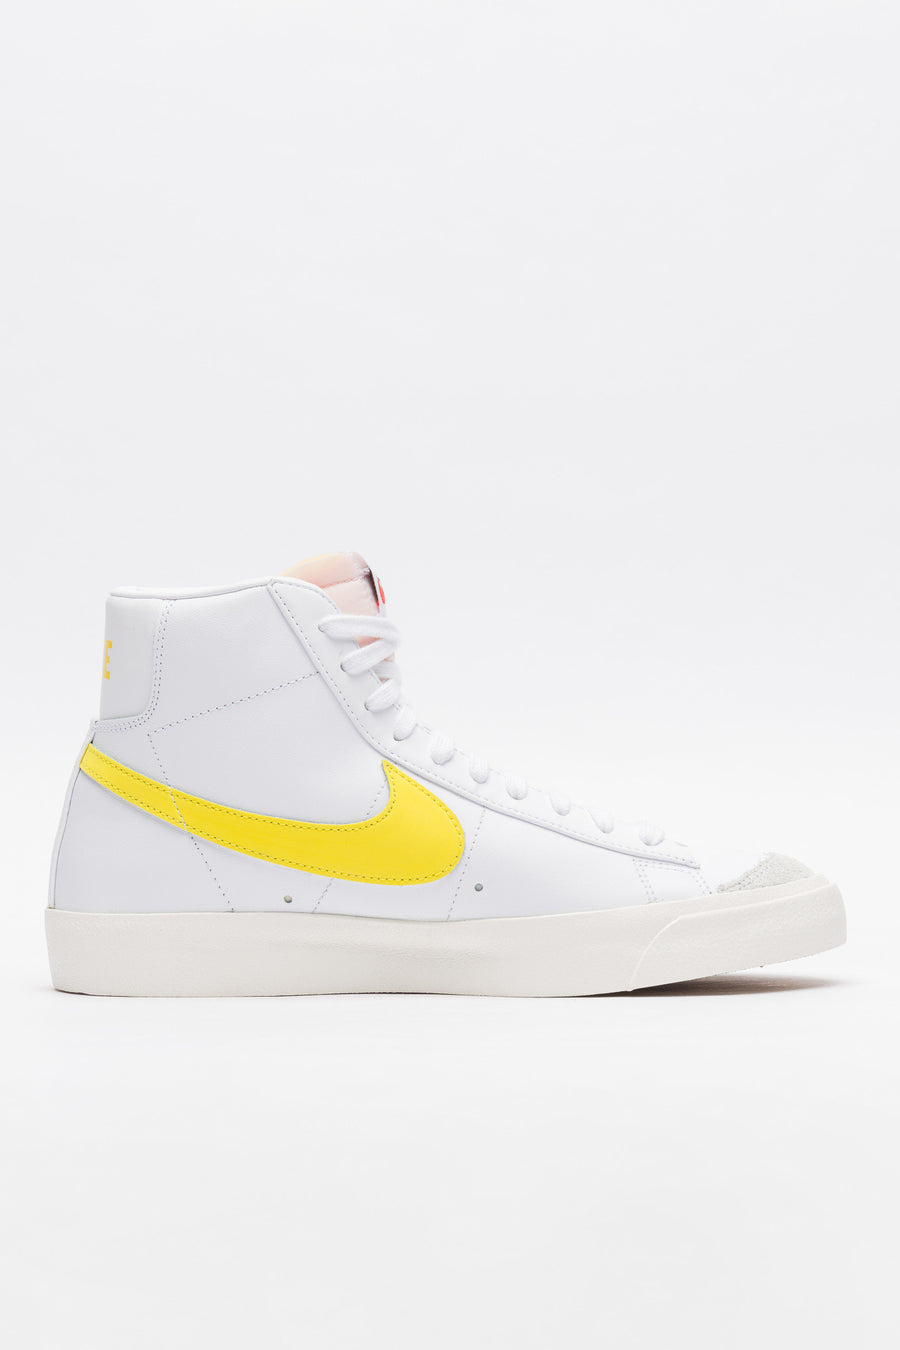 Blazer Mid 77 VNTG in White/Yellow